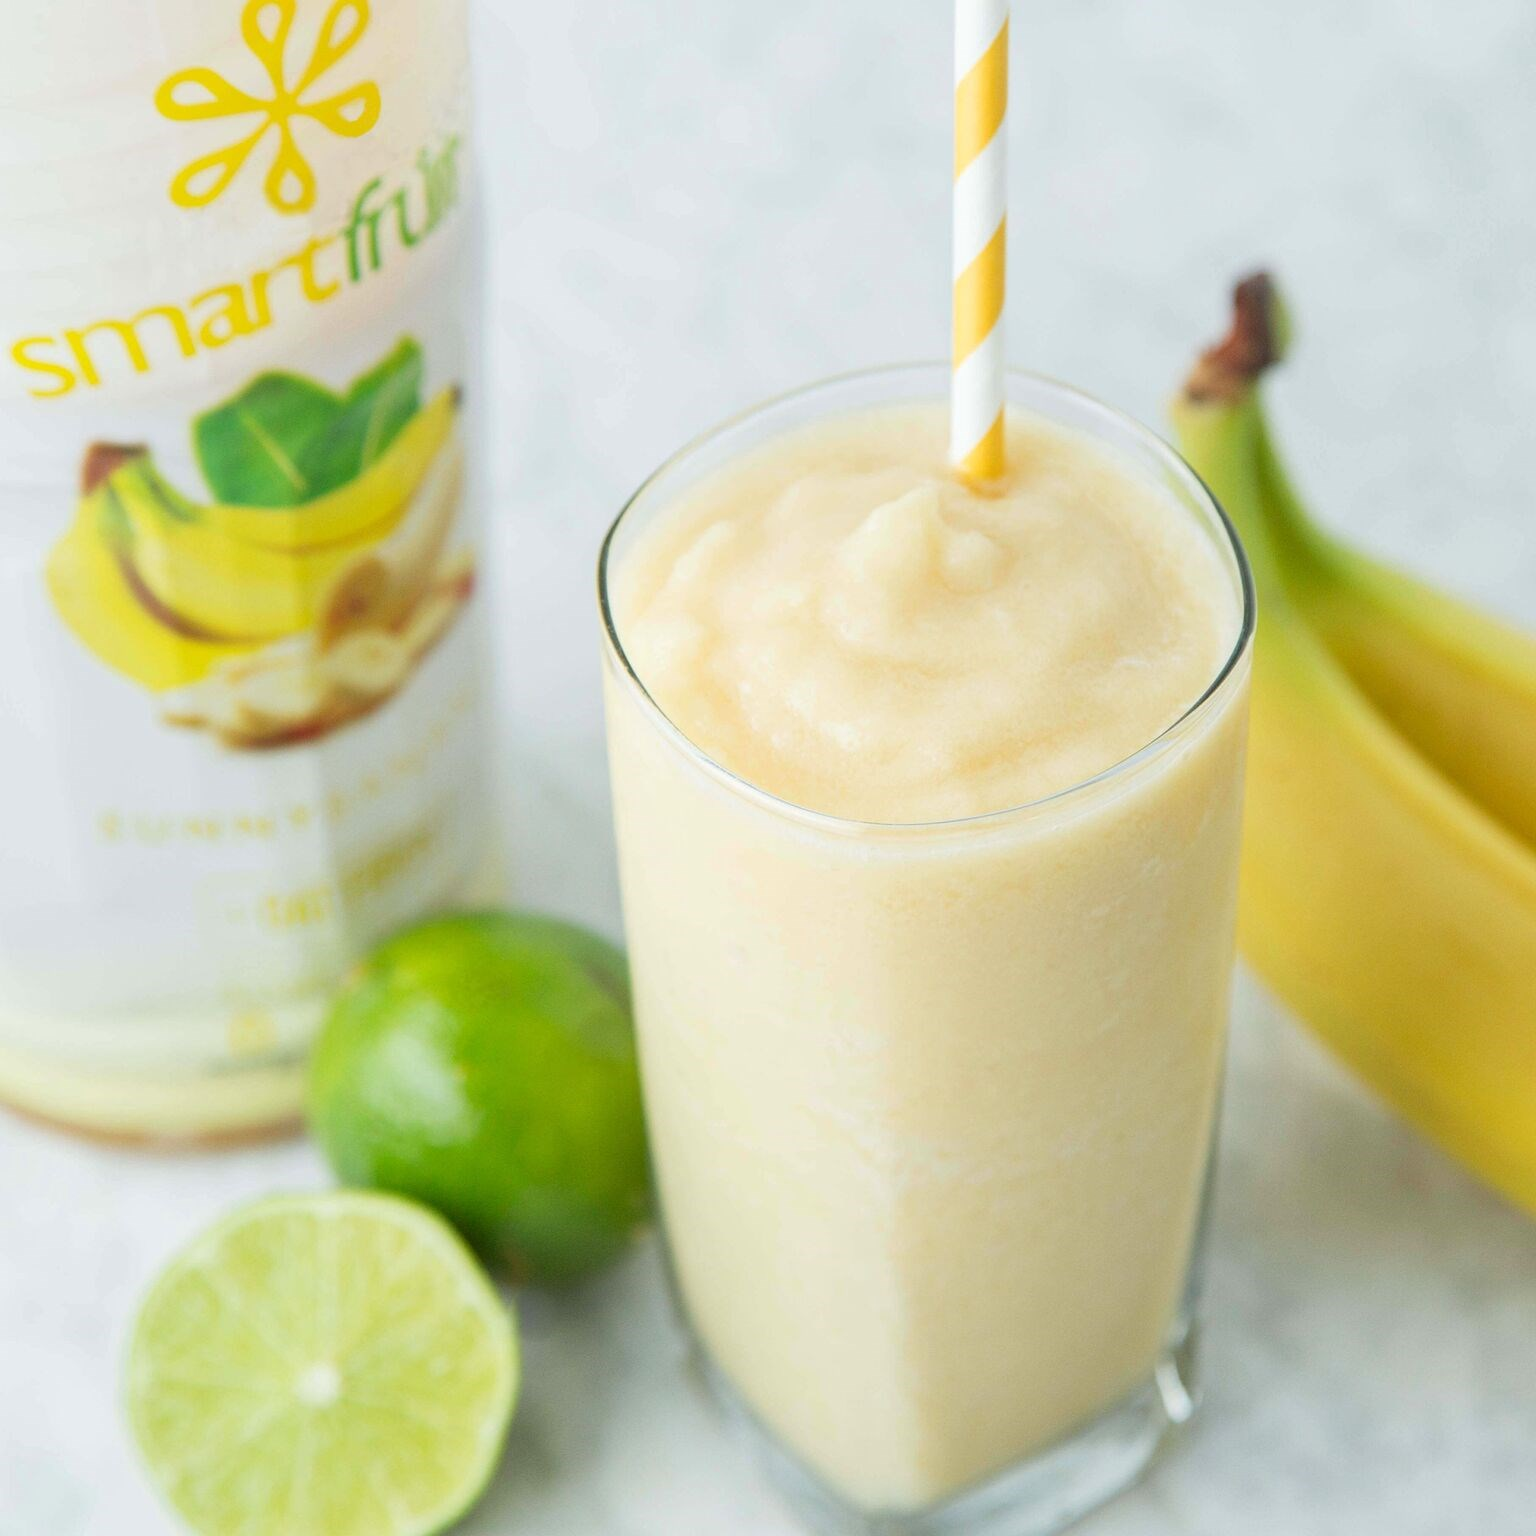 Banana Lime Smoothie Made with Smartfruit